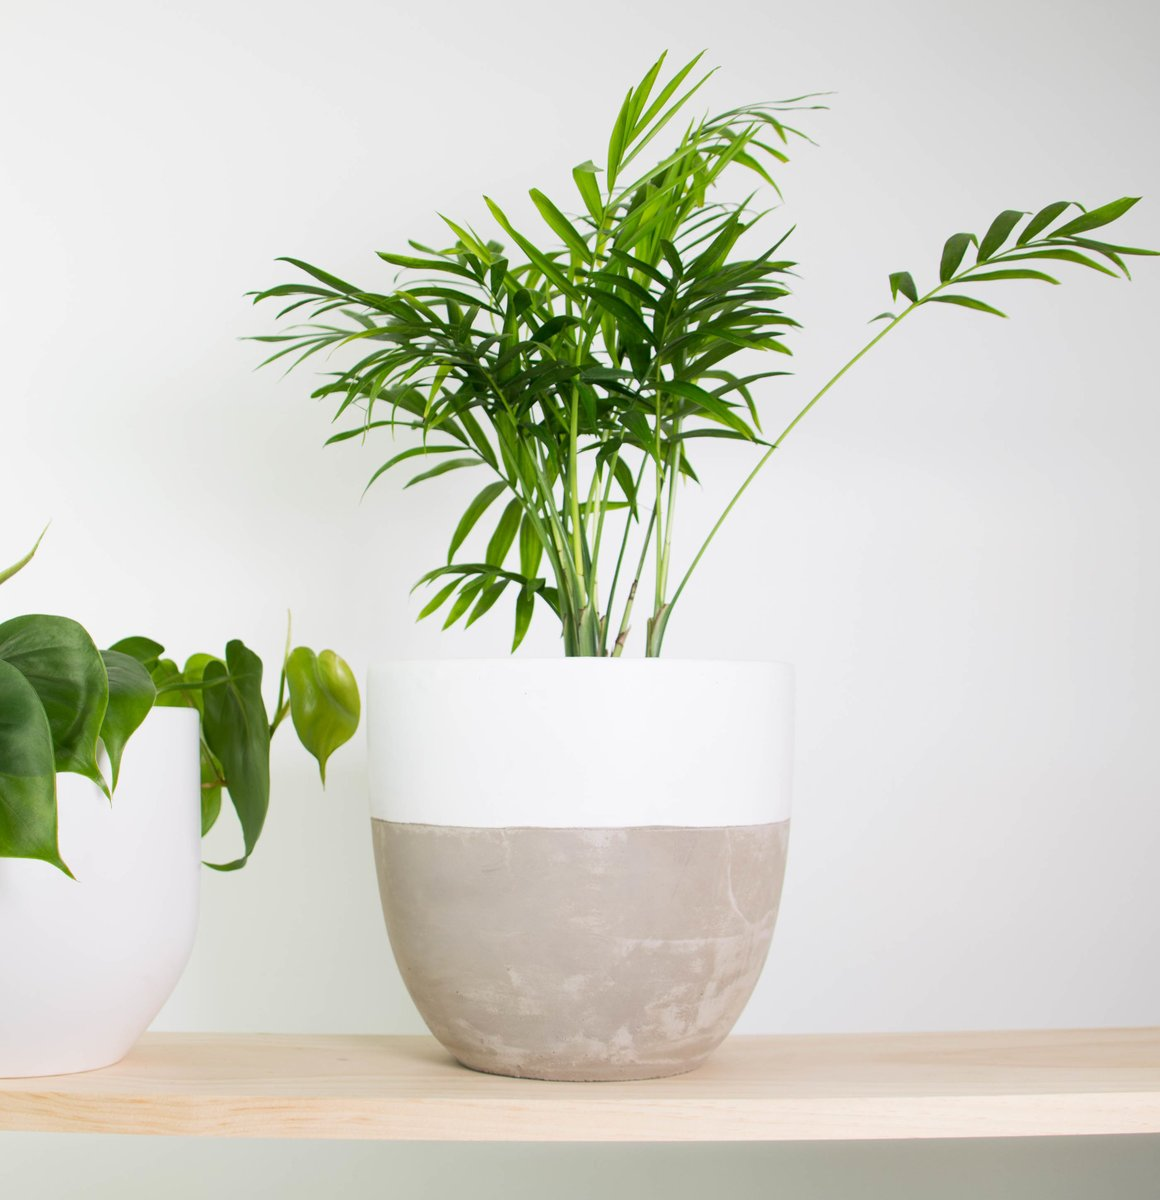 Parlour Palm In White Dipped Concrete Pot